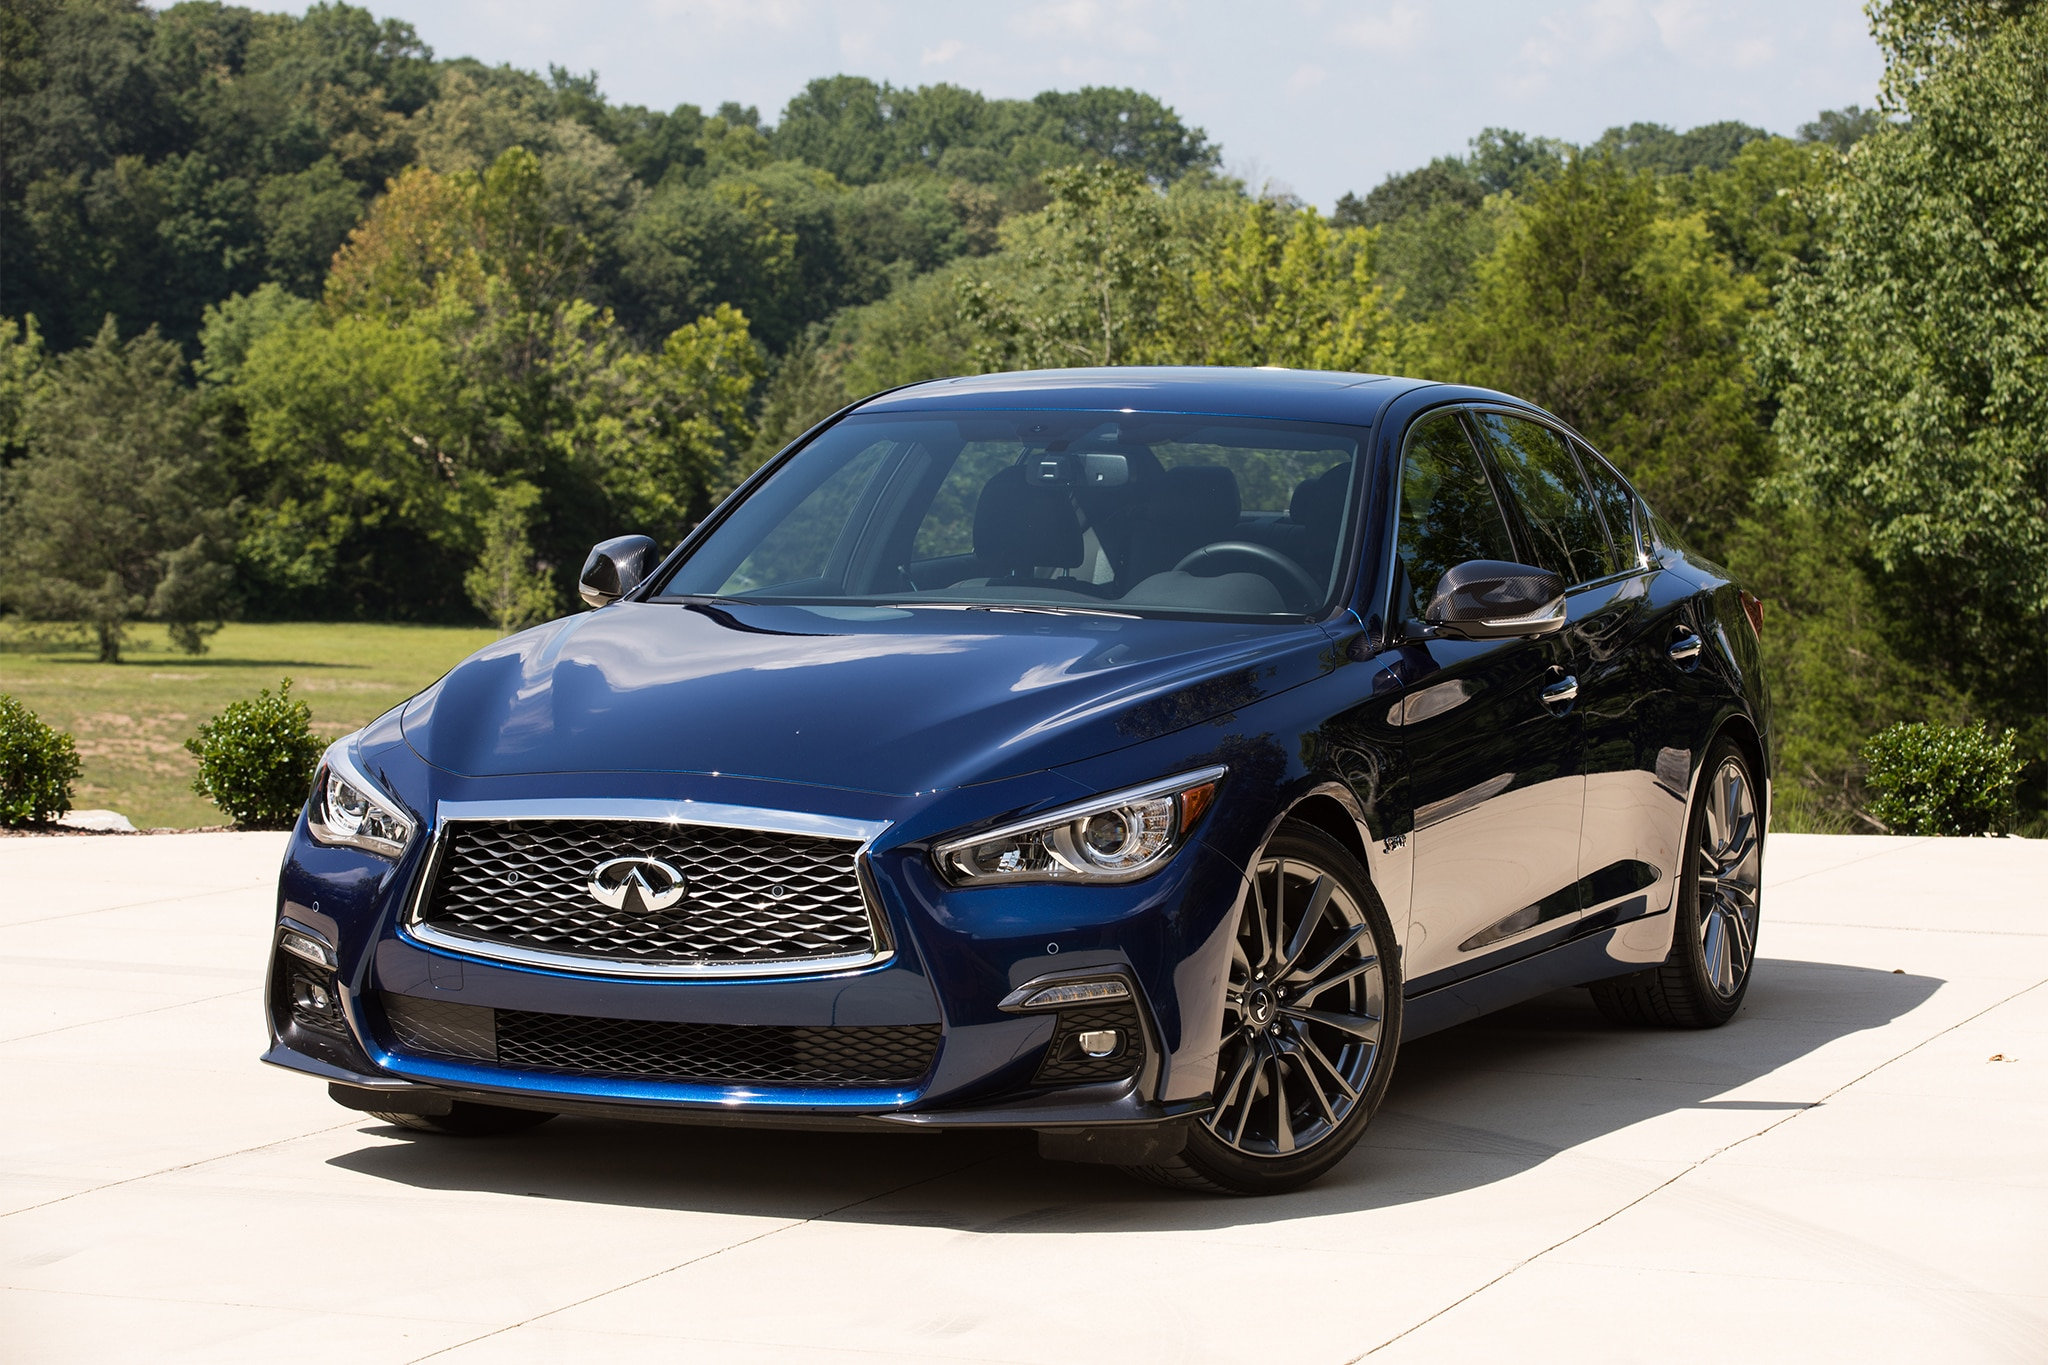 2018 infiniti q50 red sport 400 first drive review automobile magazine. Black Bedroom Furniture Sets. Home Design Ideas